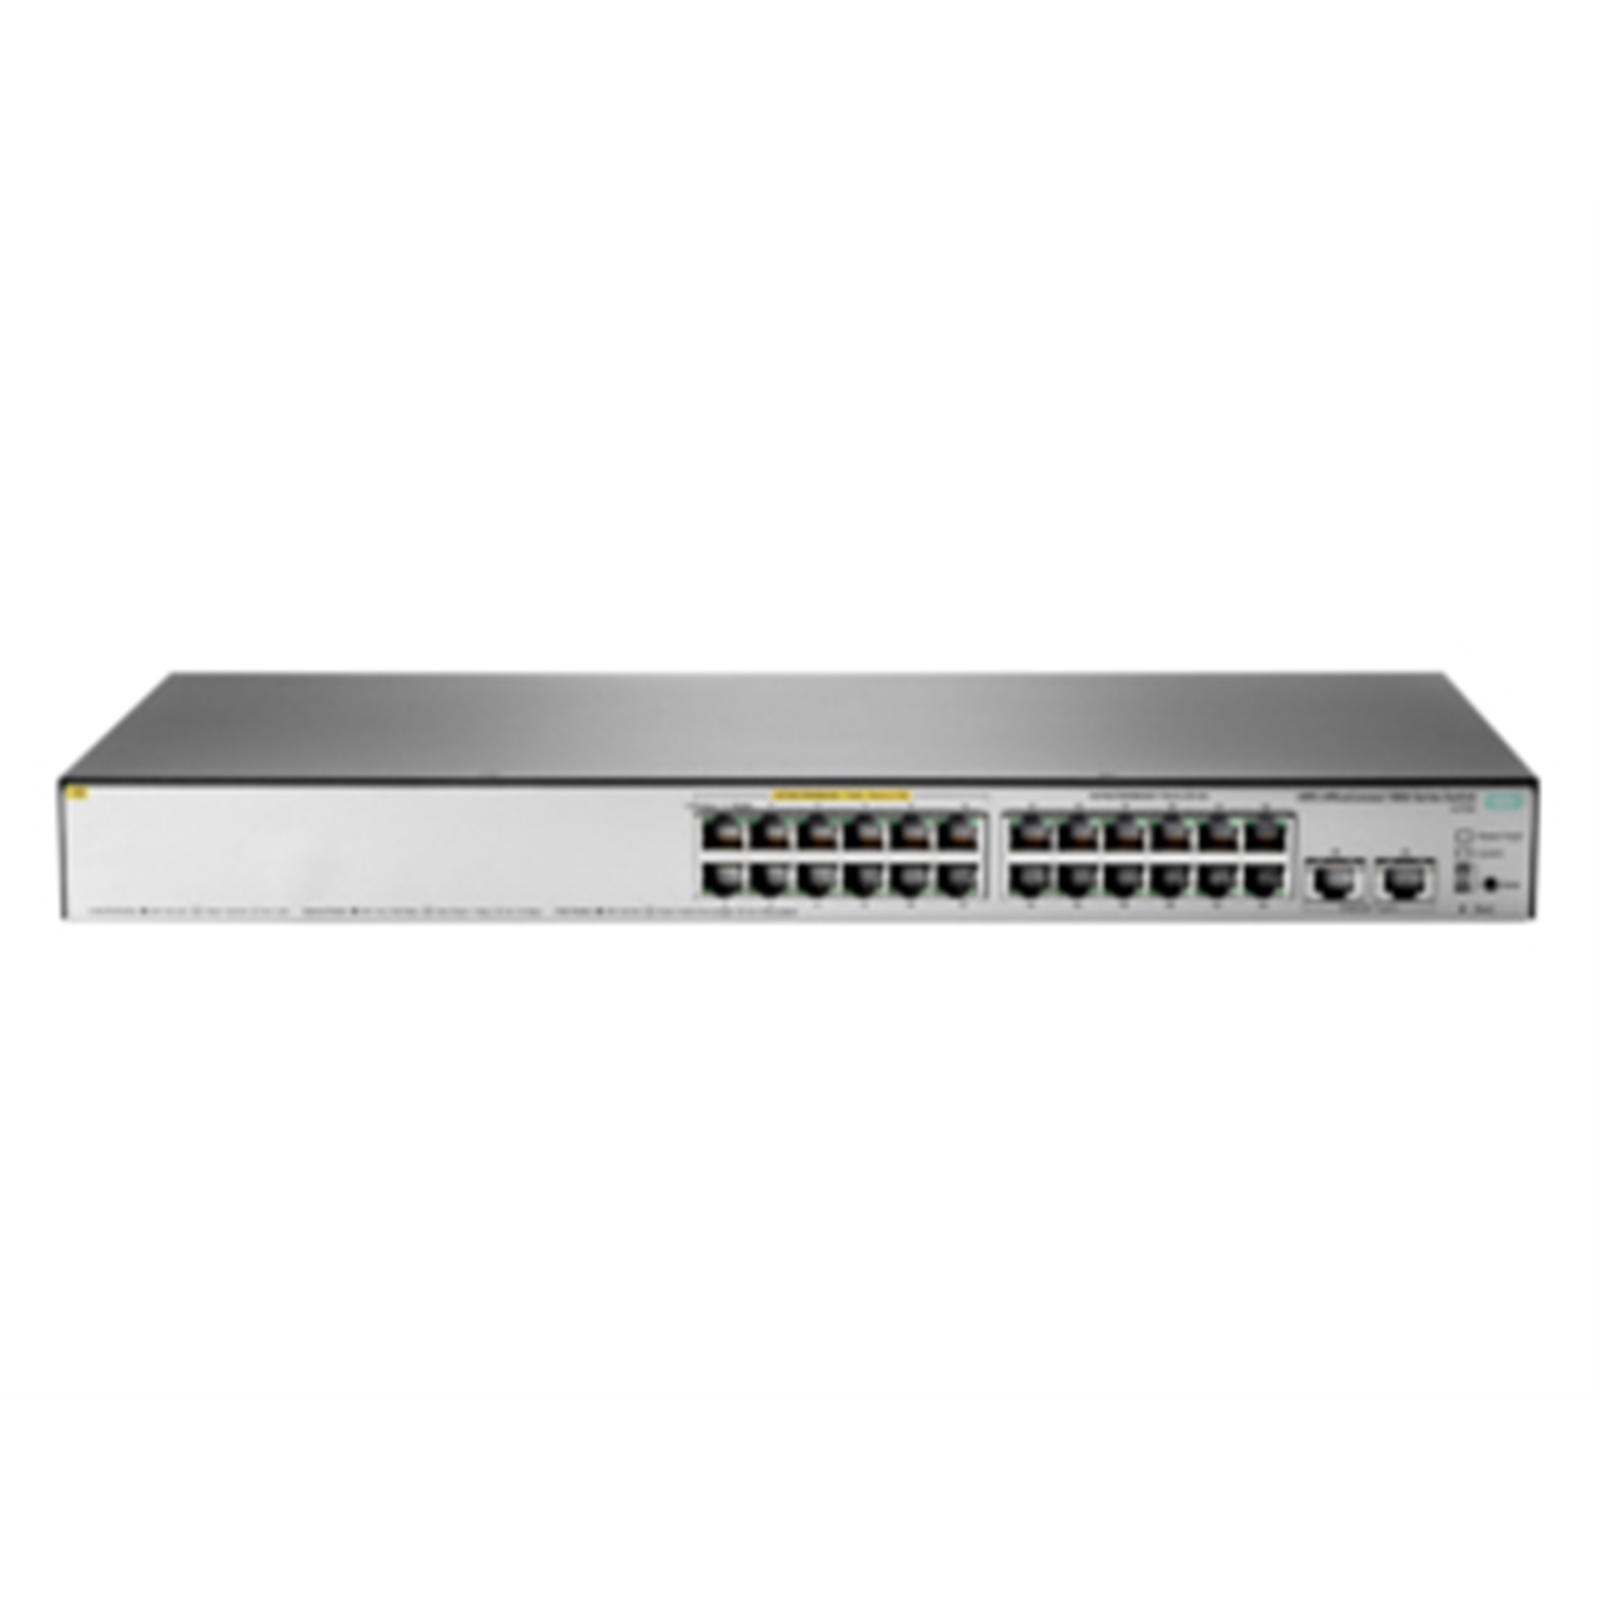 Smart Managed Switches Jl172a Servers Plus